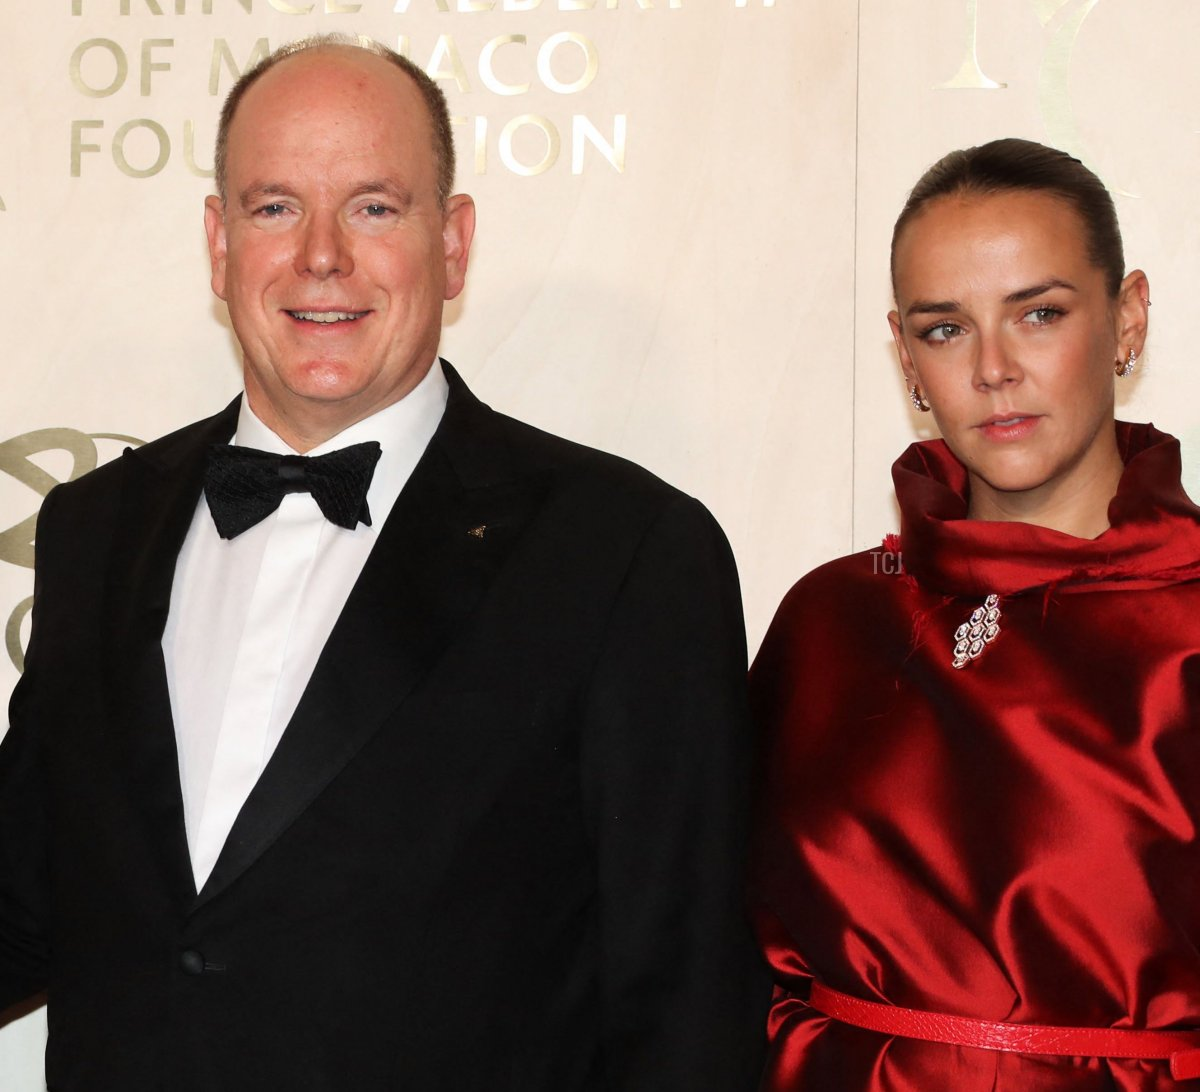 Prince's Albert II of Monaco and Pauline Ducruet pose during the photocall ahead of the 2021 Monte-Carlo Gala for Planetary Health at the Palais de Monaco, in Monaco, on September 23, 2021